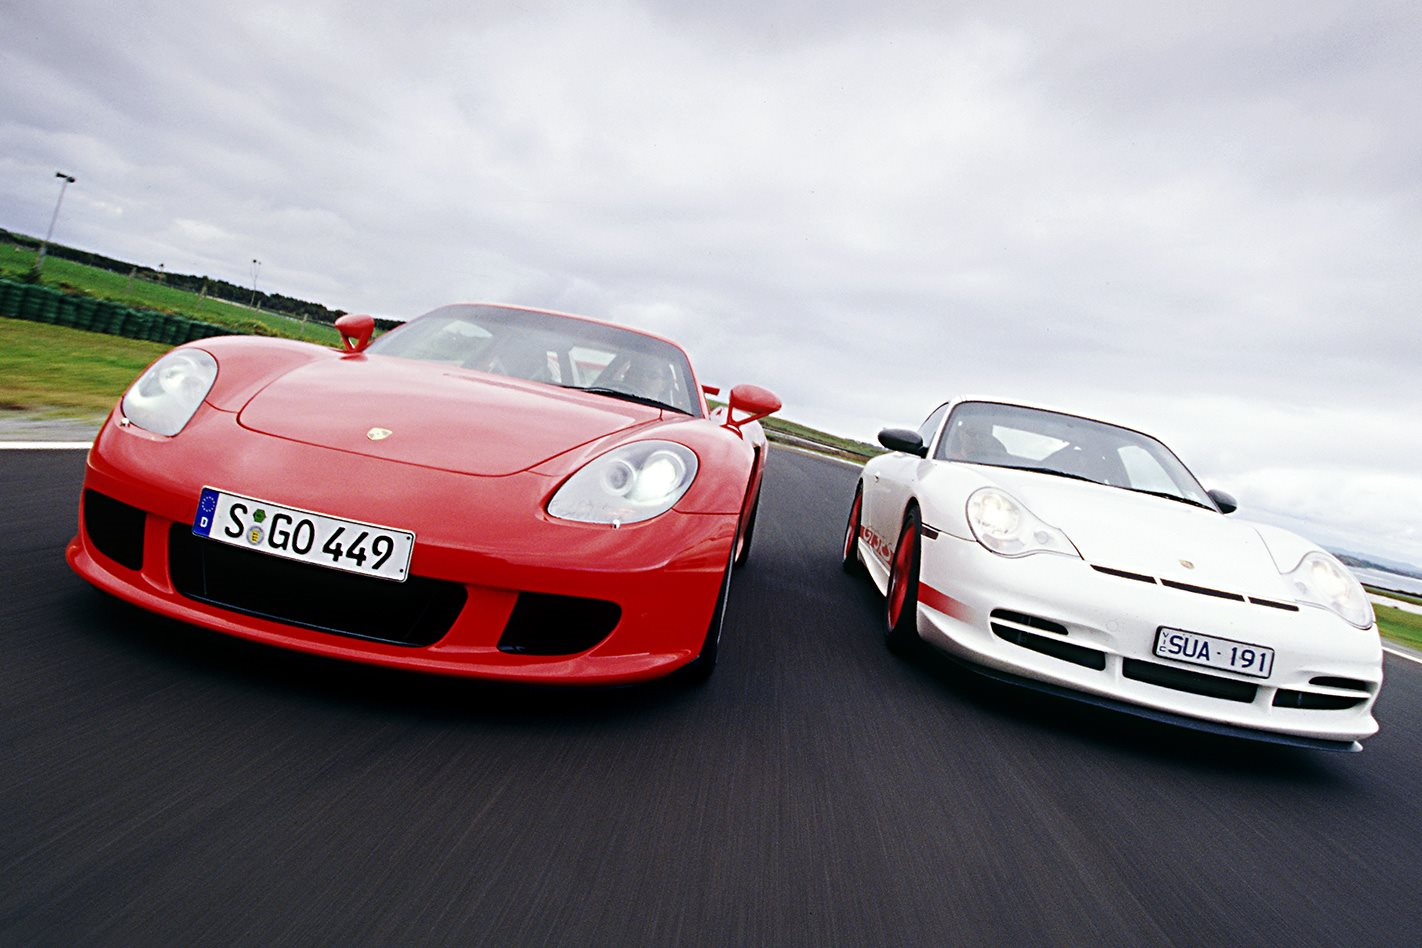 2004 Porsche Carrera GT vs Porsche 911 GT3 RS